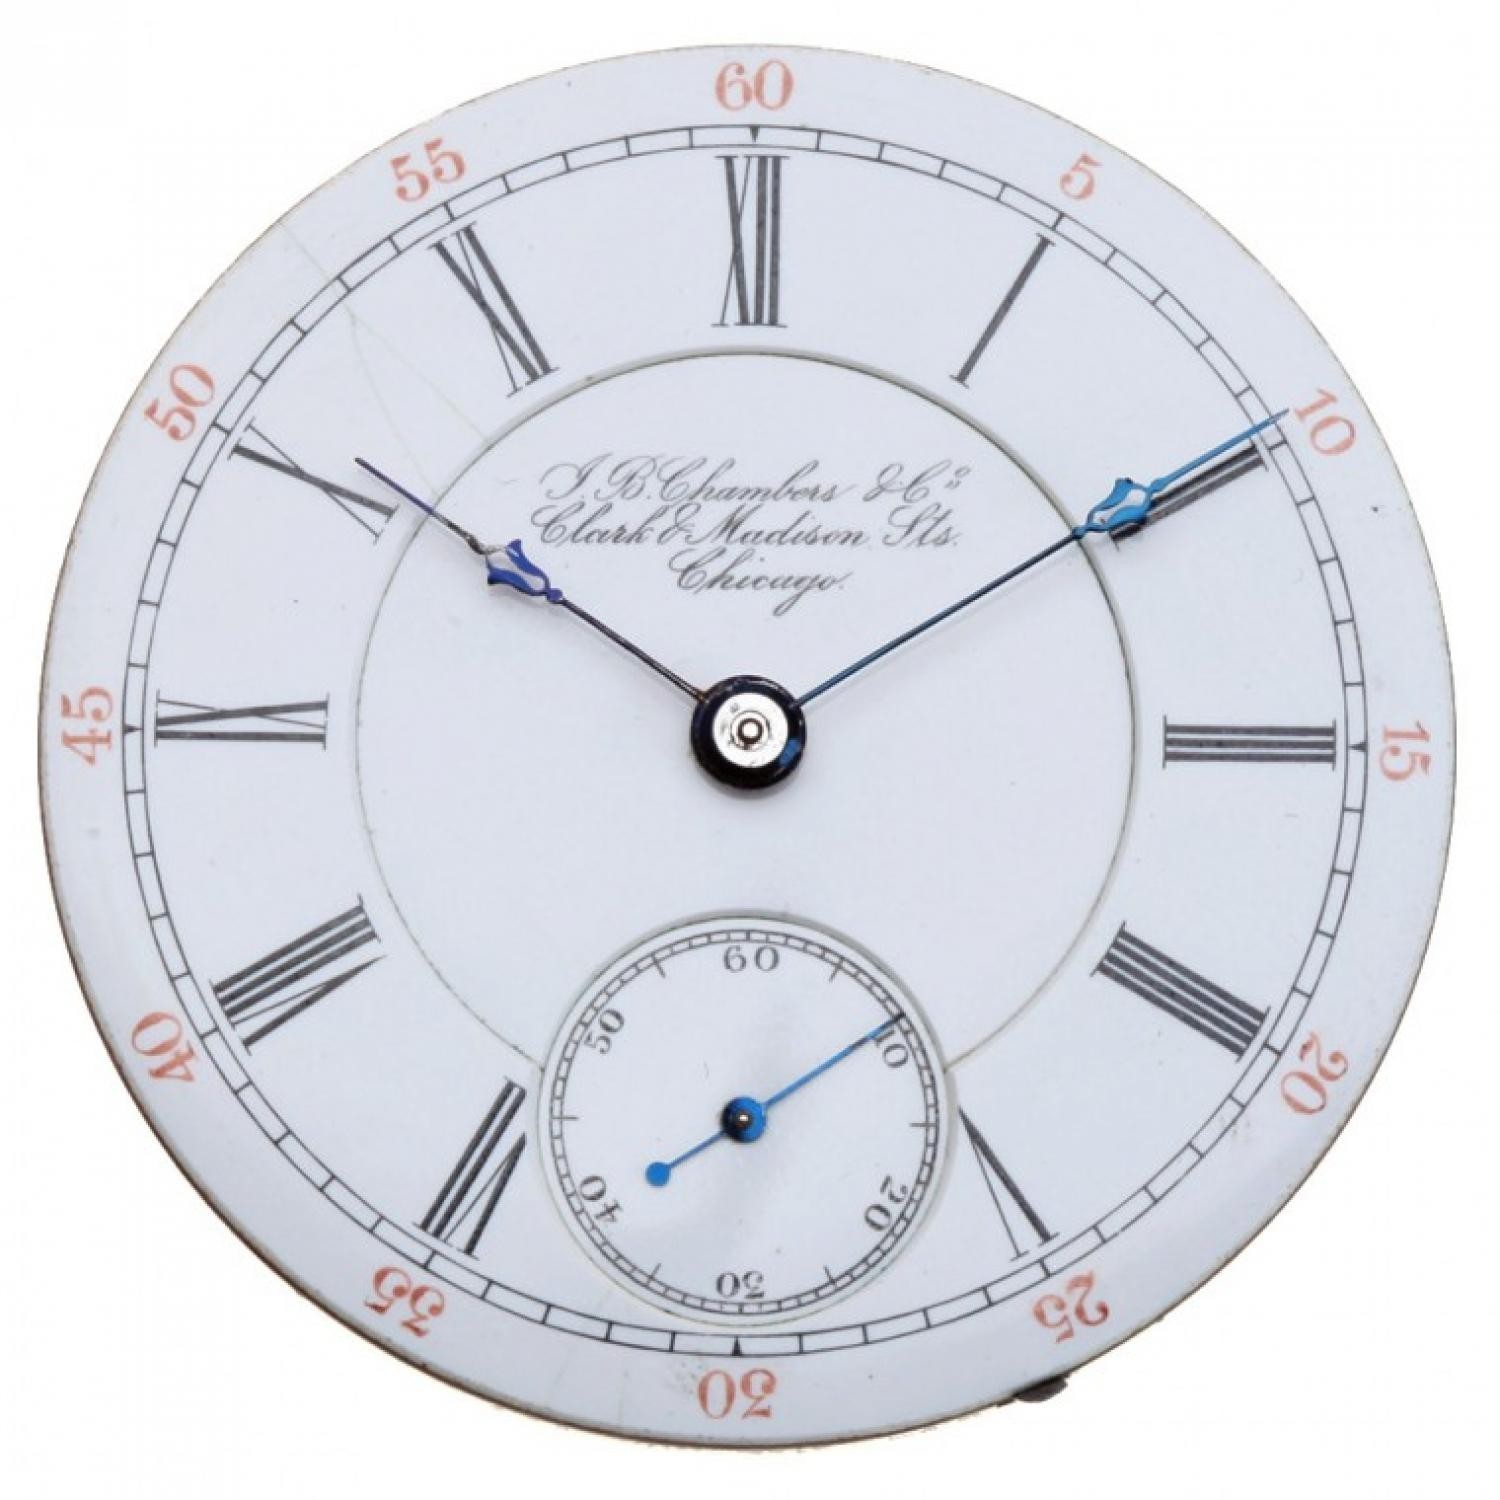 Image of Rockford 83 #327005 Dial